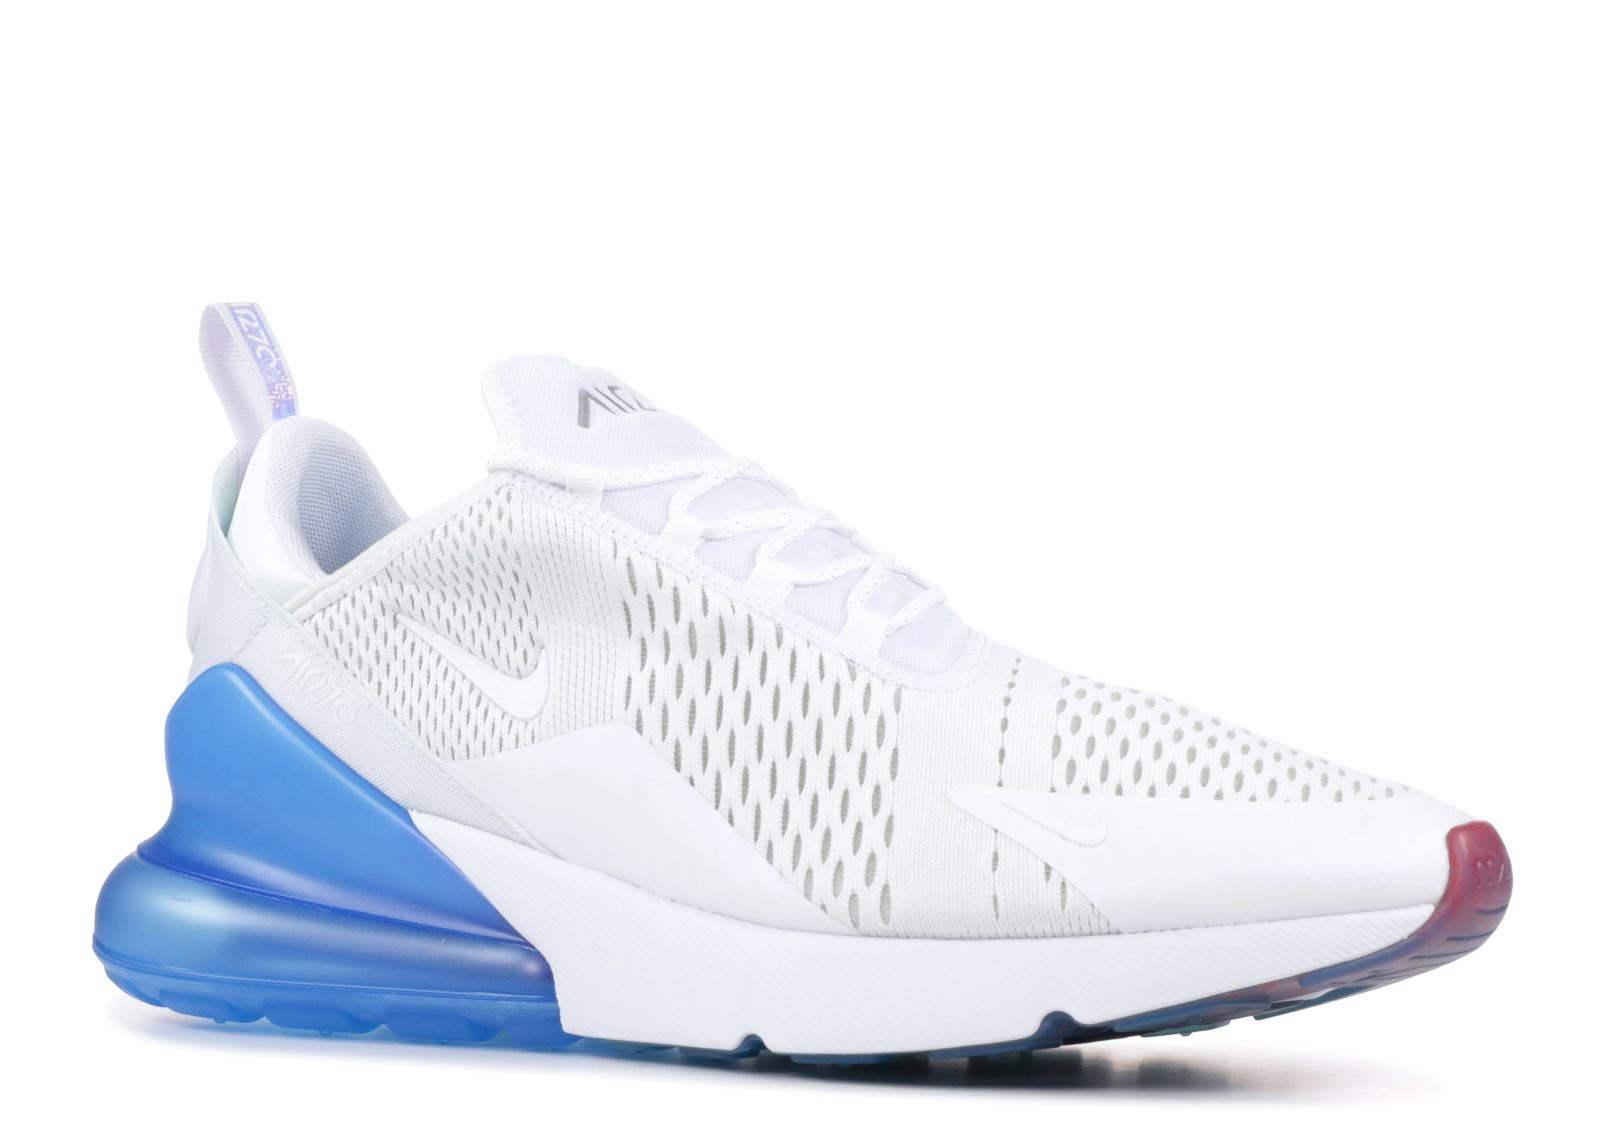 buy popular 52c78 f5fd7 Galleon - Nike Mens Air Max 270 Running Shoes White Photo Blue Pure Platinum  AQ7982-100 Size 10.5